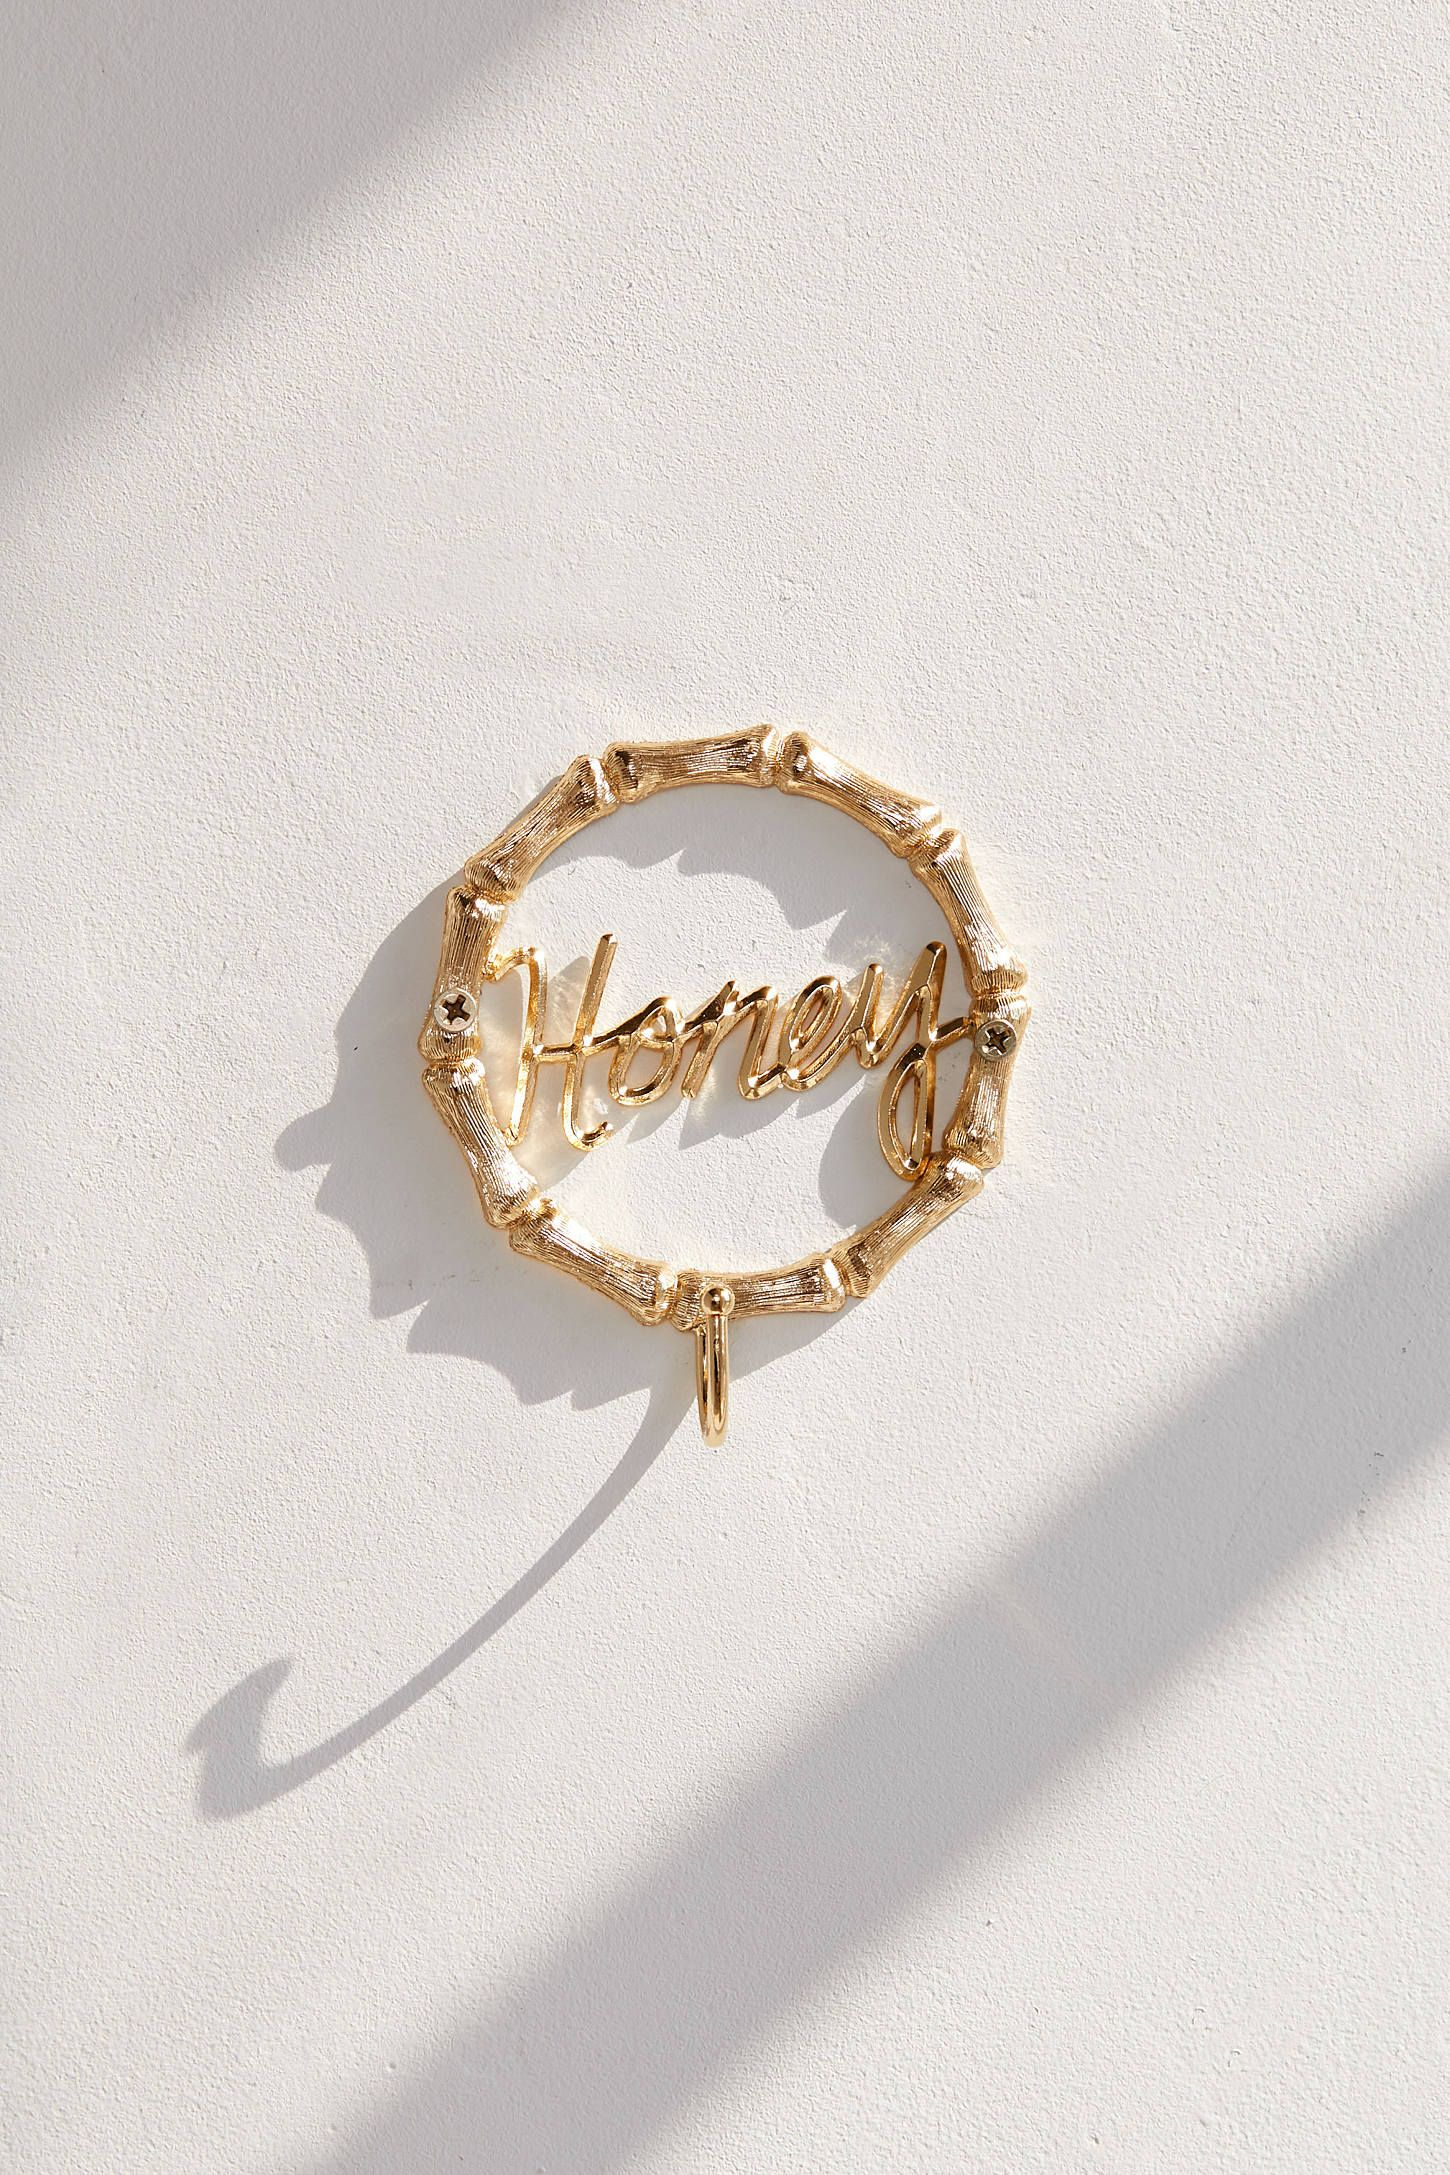 Honey Bamboo Metal Hook is part of Metal Home Accessories Living Rooms - Shop Honey Bamboo Metal Hook at Urban Outfitters today  Discover more selections just like this online or instore   Shop your favorite brands and sign up for UO Rewards to receive 10% off your next purchase!